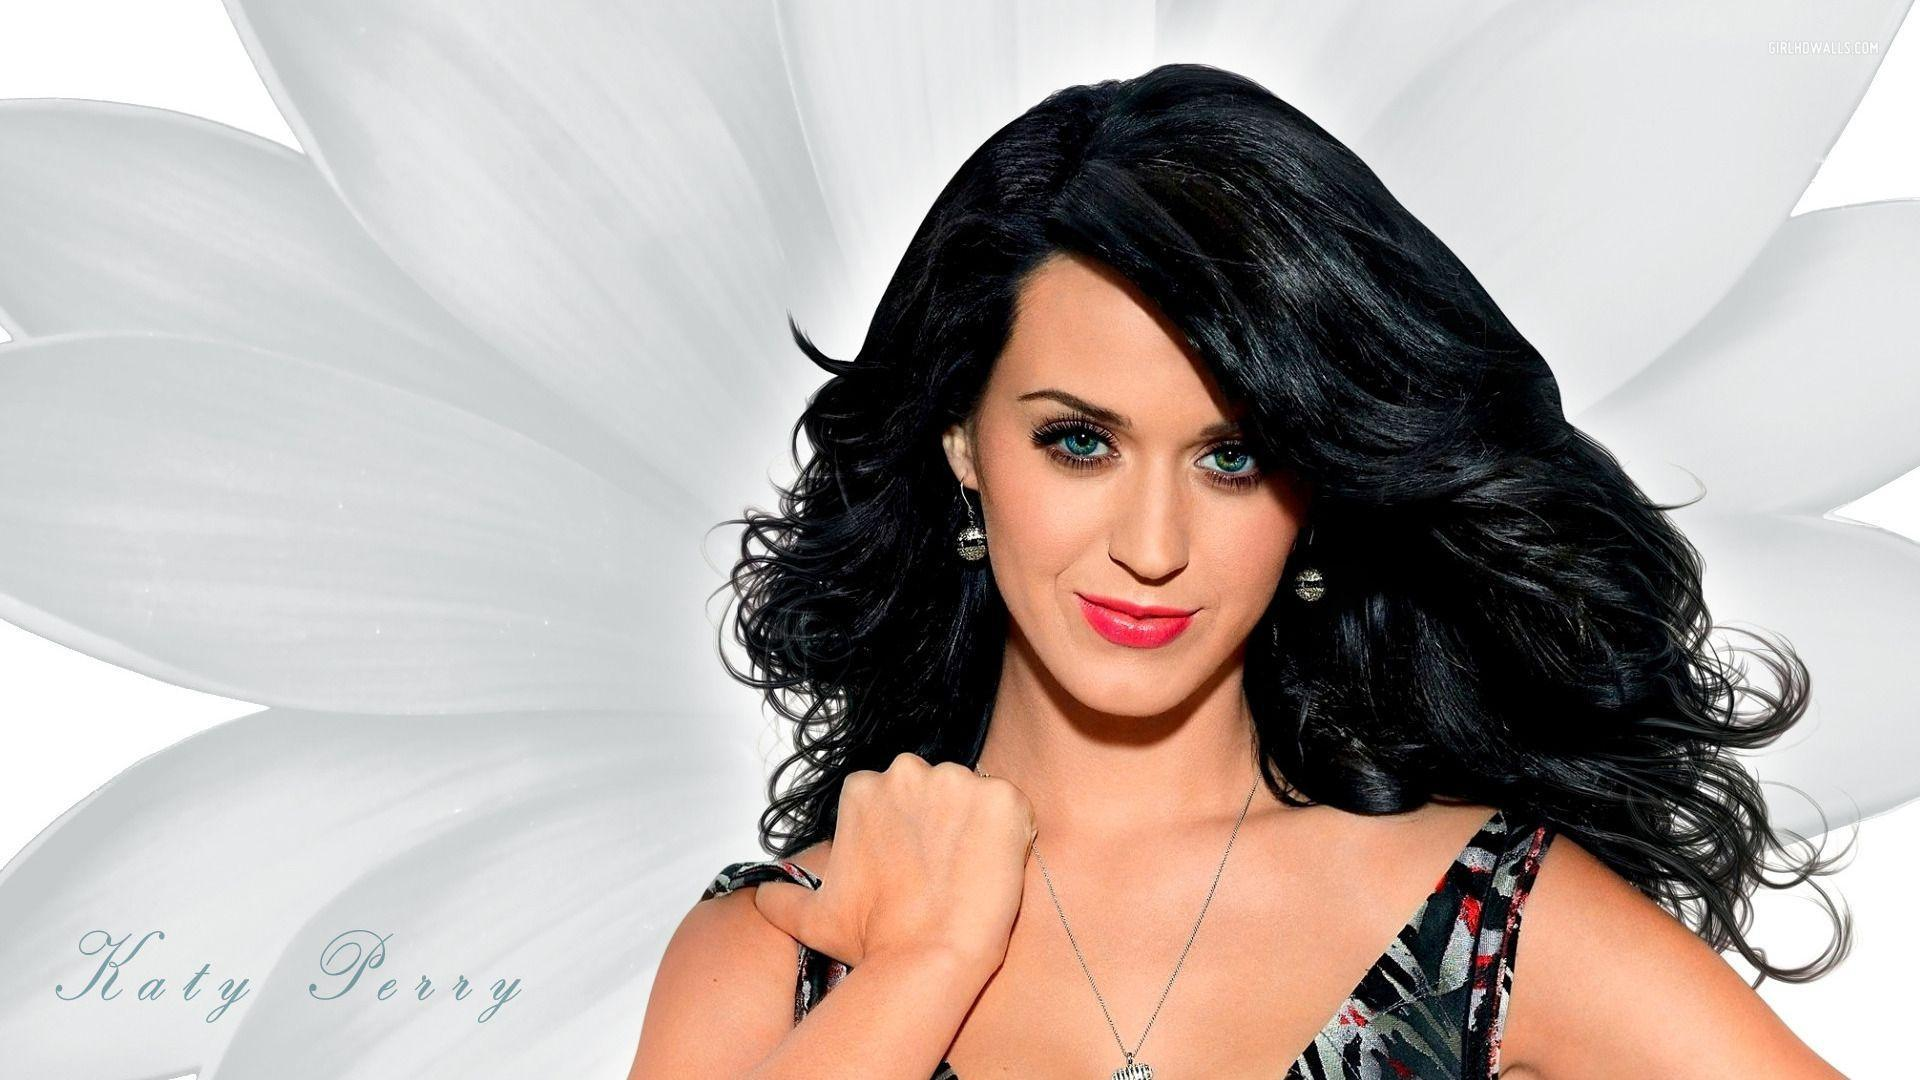 Katy Perry Wallpapers 2017 - Wallpaper Cave Katy Perry